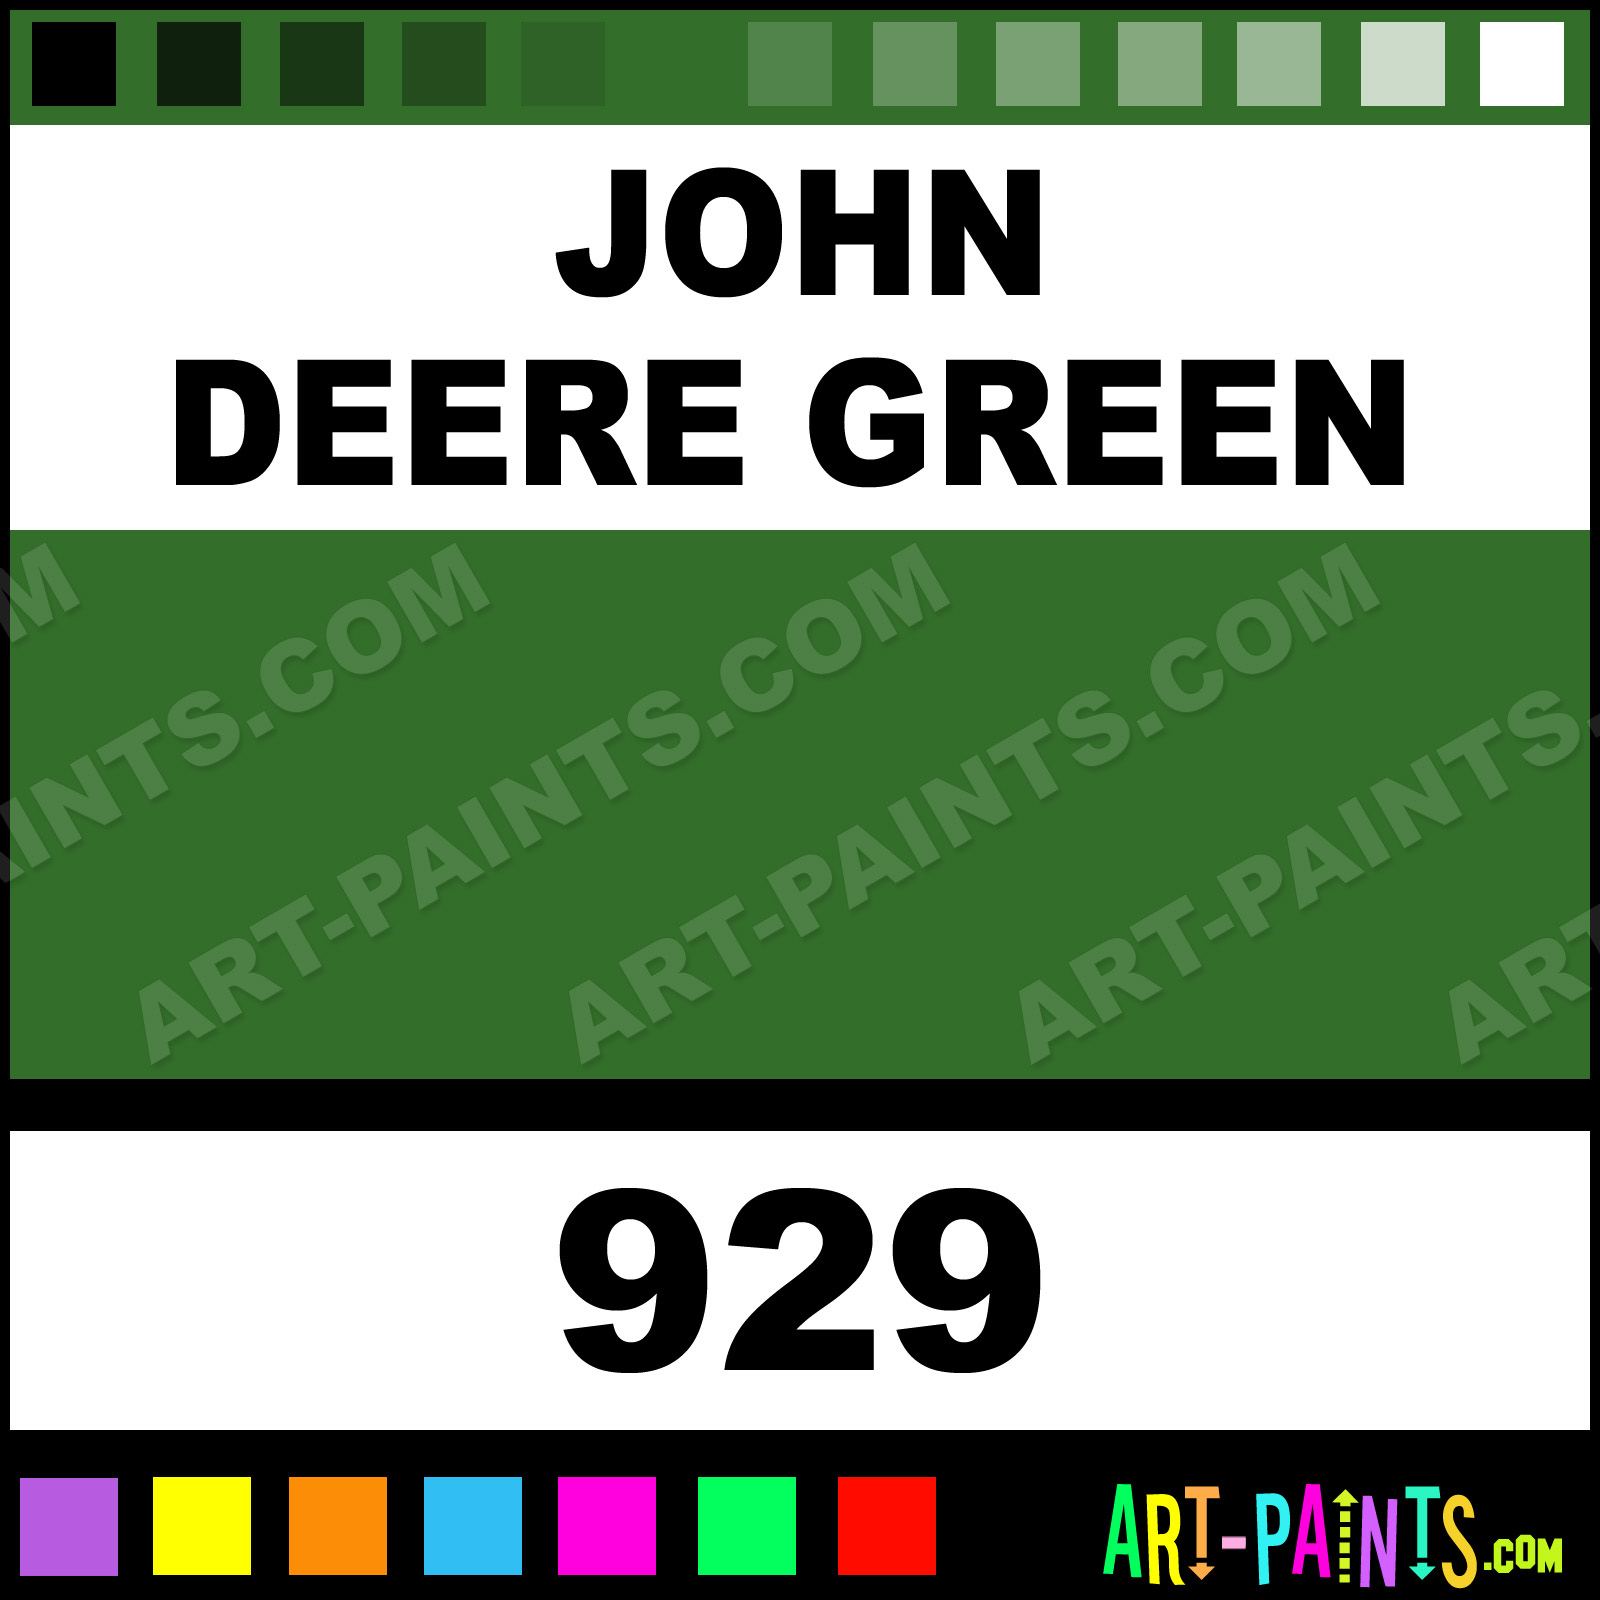 John Deere Room Paint Colors http://www.art-paints.com/Paints/Spray/Orr-Lac/Heavy-Duty-Auto/John-Deere-Green/John-Deere-Green.html